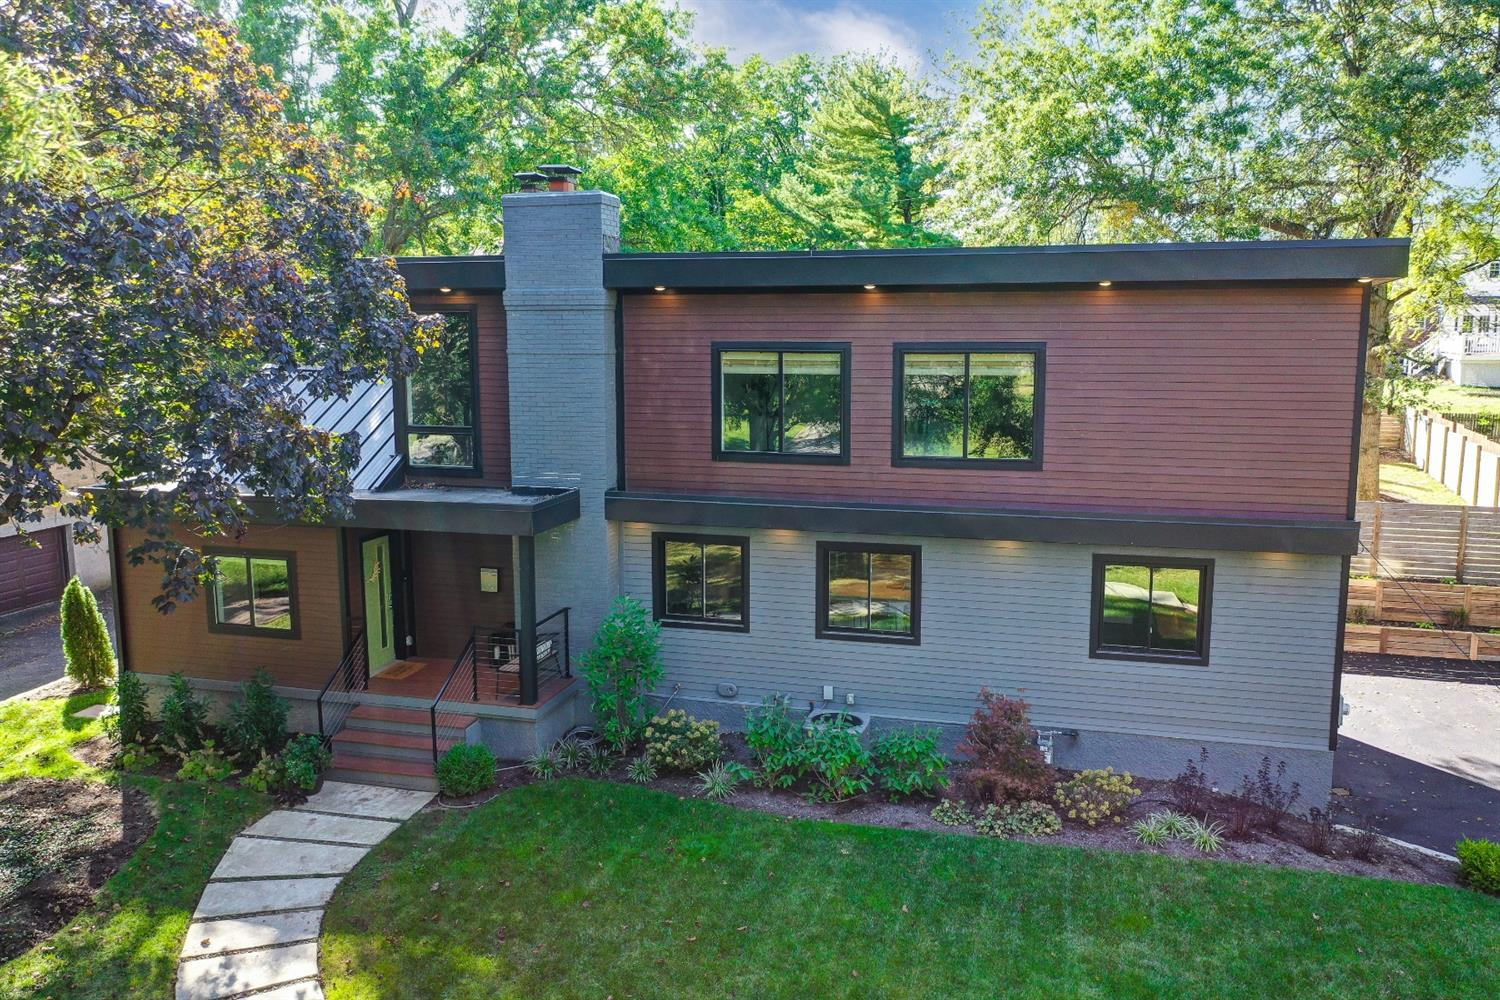 7671 Hosbrook Road, Sycamore Twp, Ohio 45243, 4 Bedrooms Bedrooms, 10 Rooms Rooms,3 BathroomsBathrooms,Single Family Residence,For Sale,Hosbrook,1718466